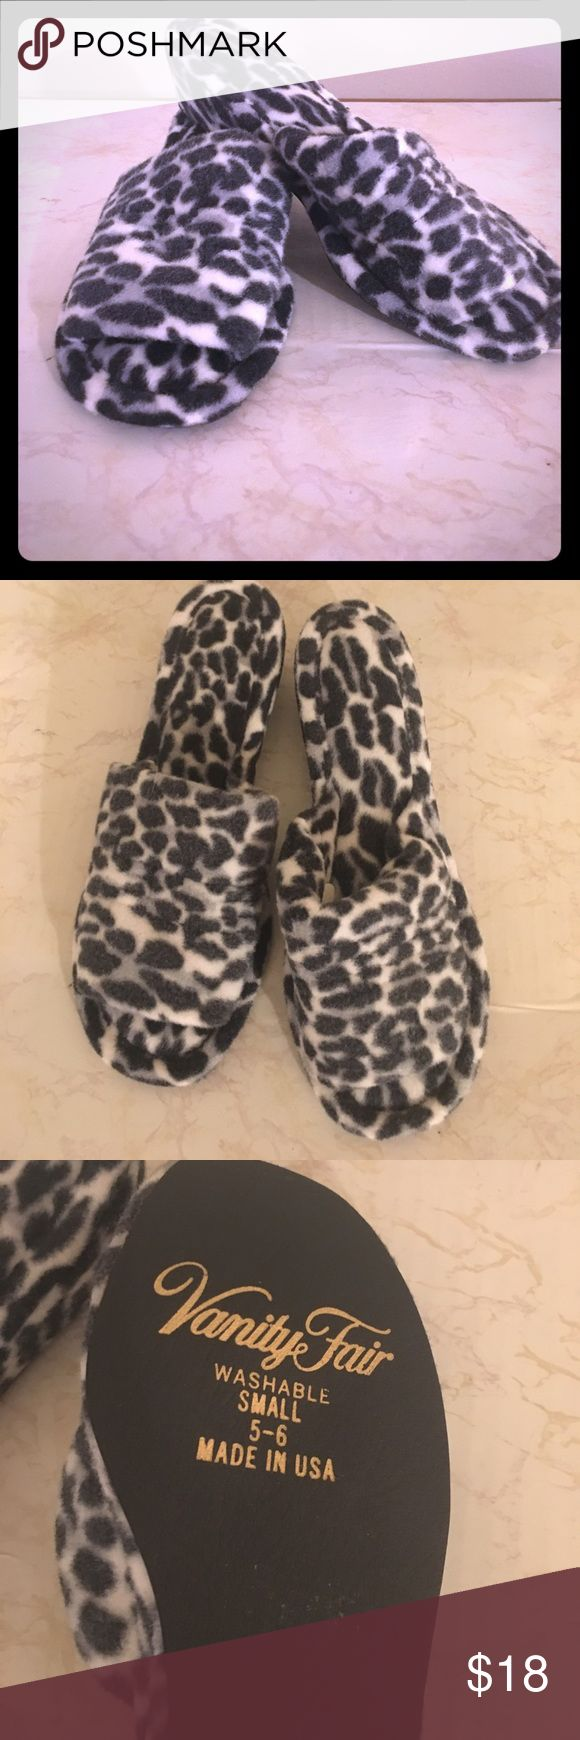 Vintage Vanity Fair Pin Up Animal Print Slippers NWOT. True Vintage. Super cute !!! Perfect for Rock A Billy Girls!! So fun! vanity fair Shoes Slippers